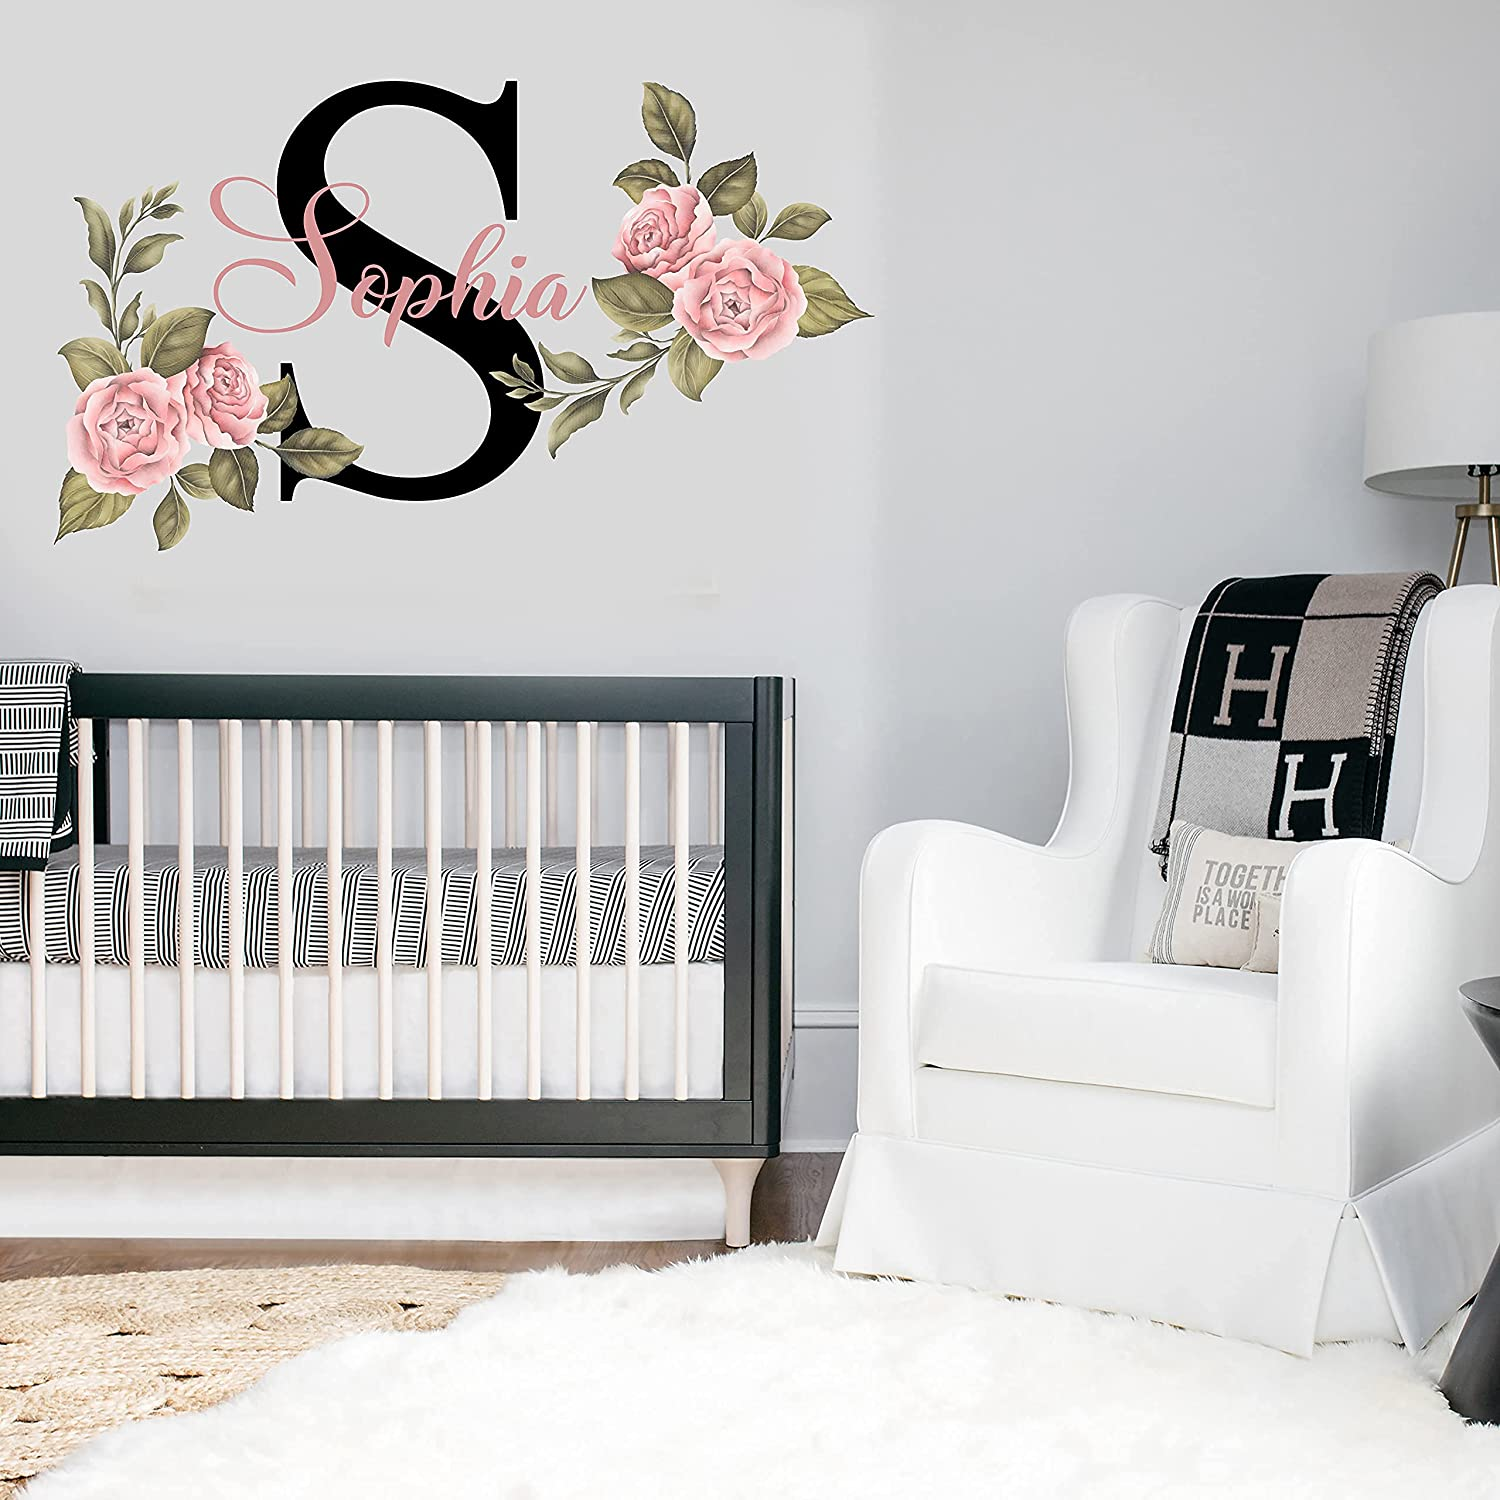 Name and Initial Peonies Wall Decal - Kids Wall Decor - WM33. Custom Name Removable Nursery Wall Decal for Girl - Flower Mural Wall Decal for Girls Bedroom